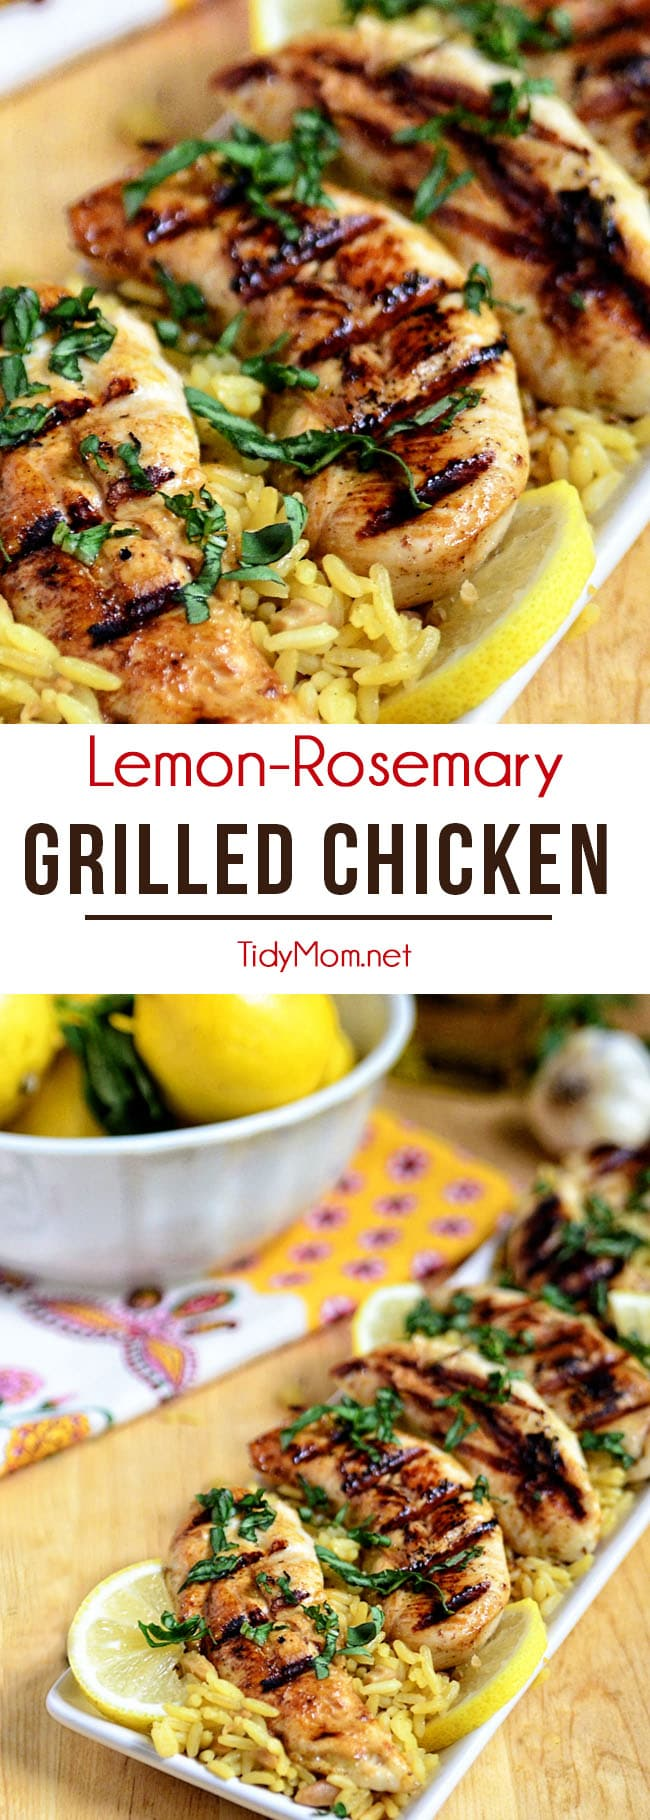 This Lemon Rosemary Grilled Chicken cooks up on the grill in under 10 minutes! Marinade ahead of time for a quick, healthy and delicious chicken dinner. Print the recipe at TidyMom.net